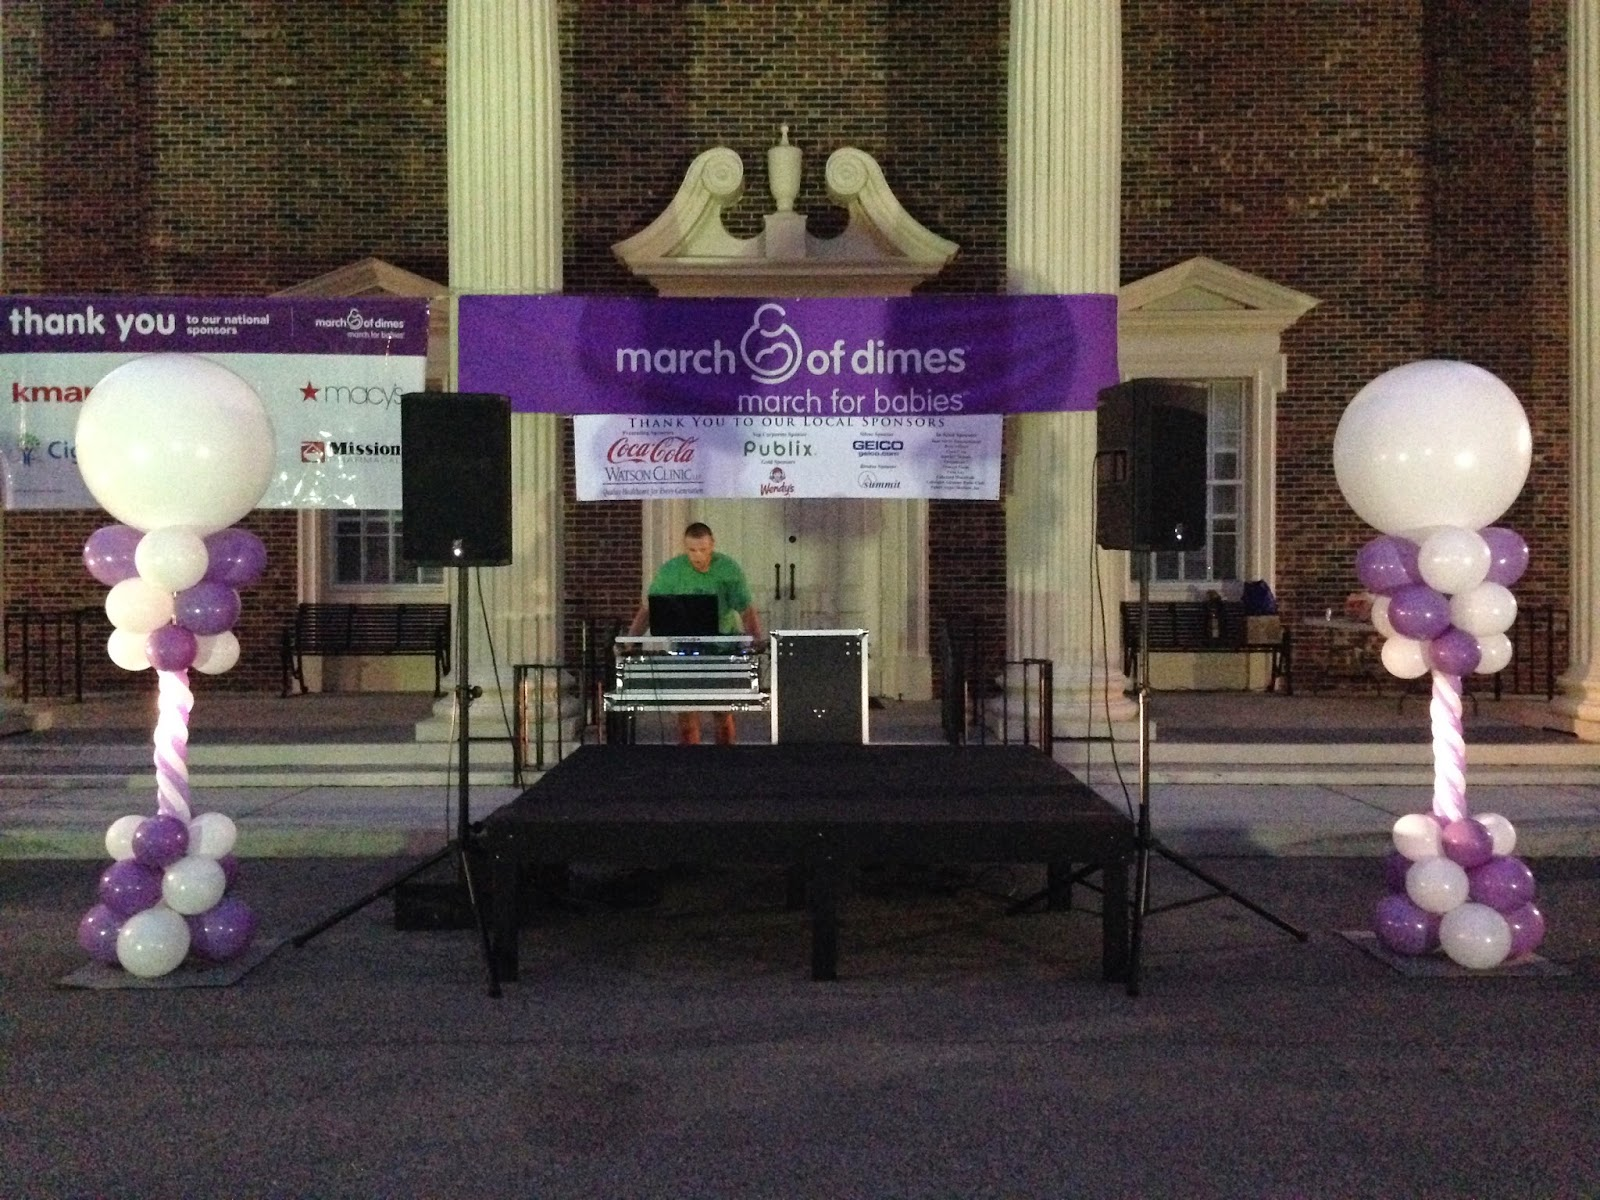 Party people event decorating company march for babies for Balloon decoration for corporate events